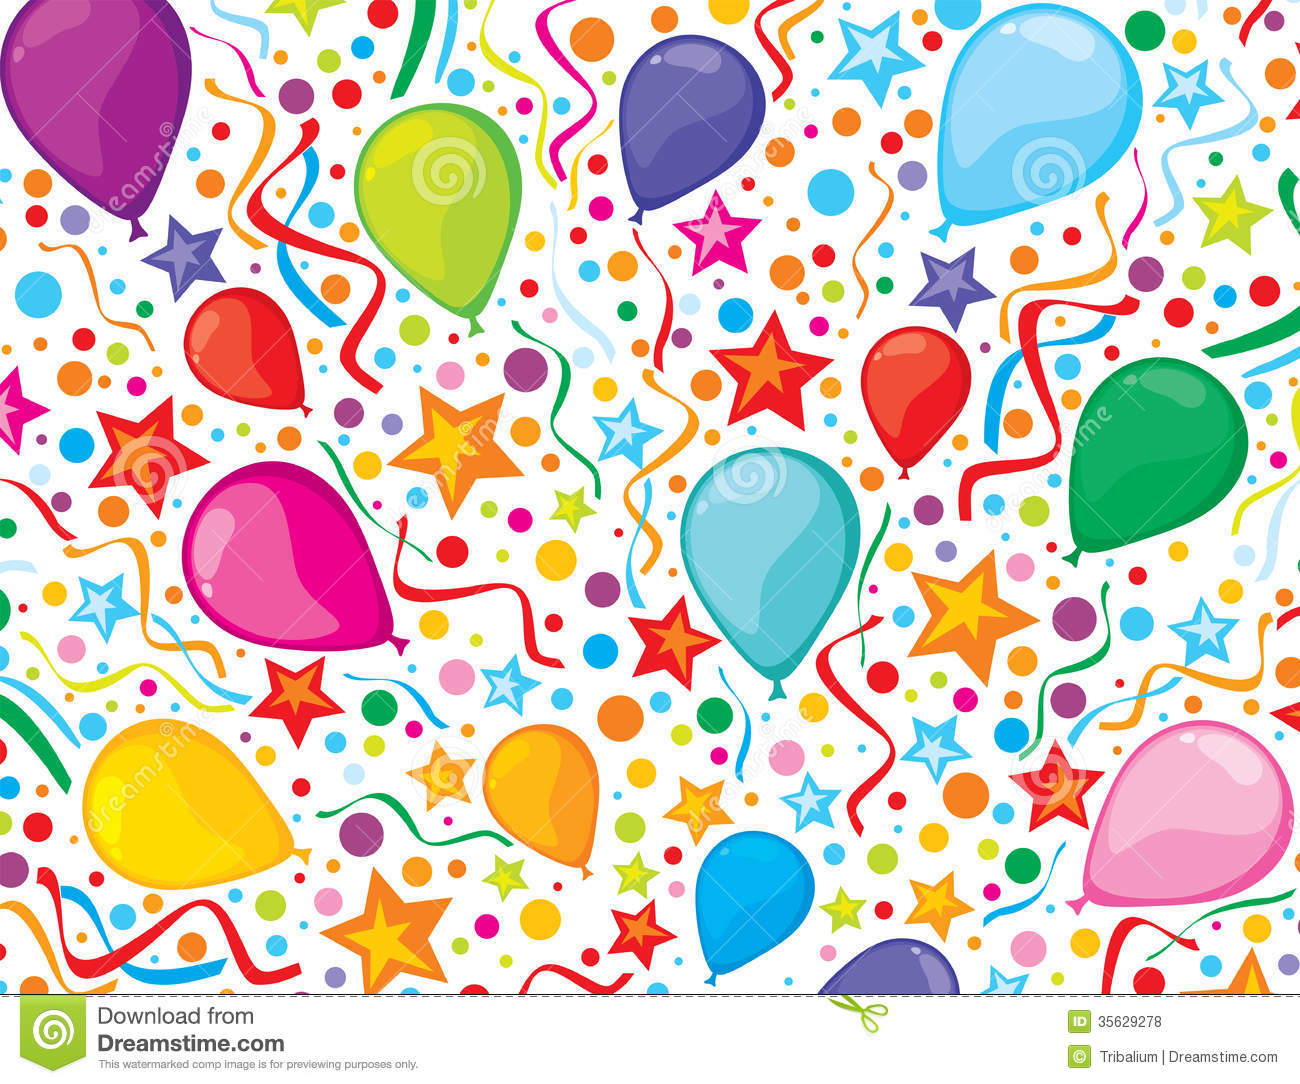 birthday party background themes ; kids-birthday-background-birthday-background-party-streamers-confe-colorful-balloons-design-childrens-design-kids-35629278